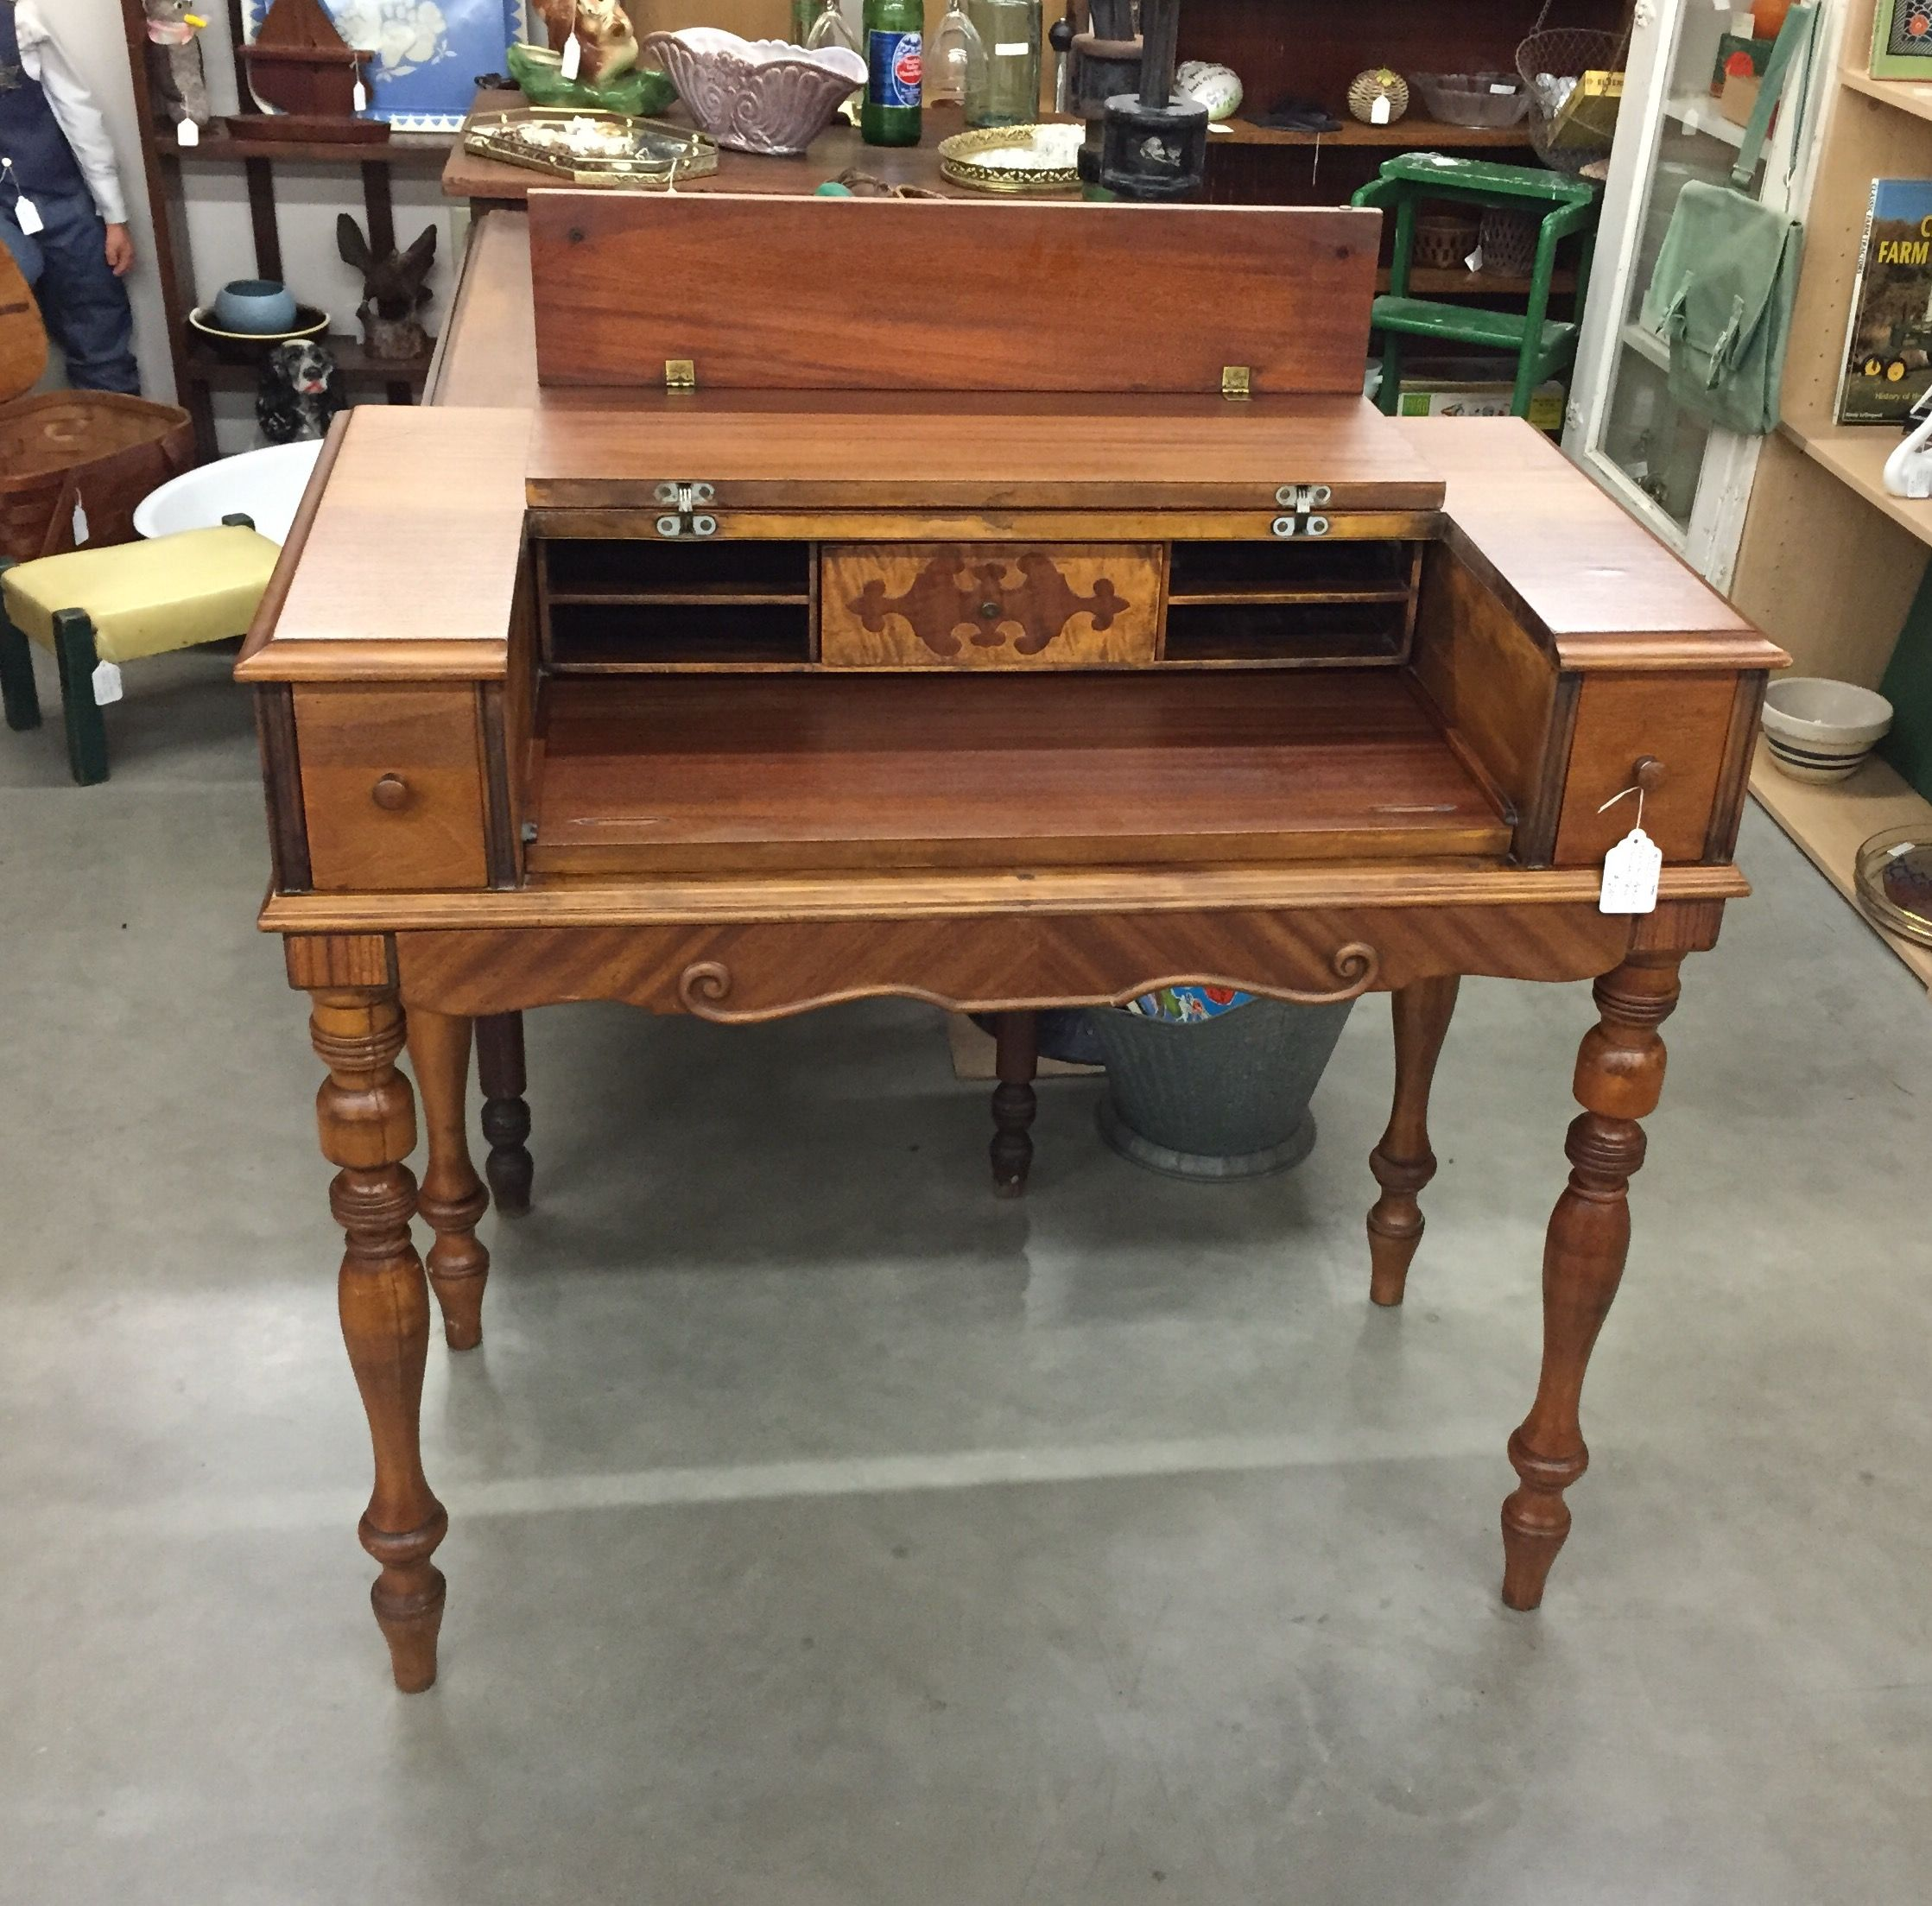 antique hekman furniture company spinet sized writing desk available at the spring street antique mall